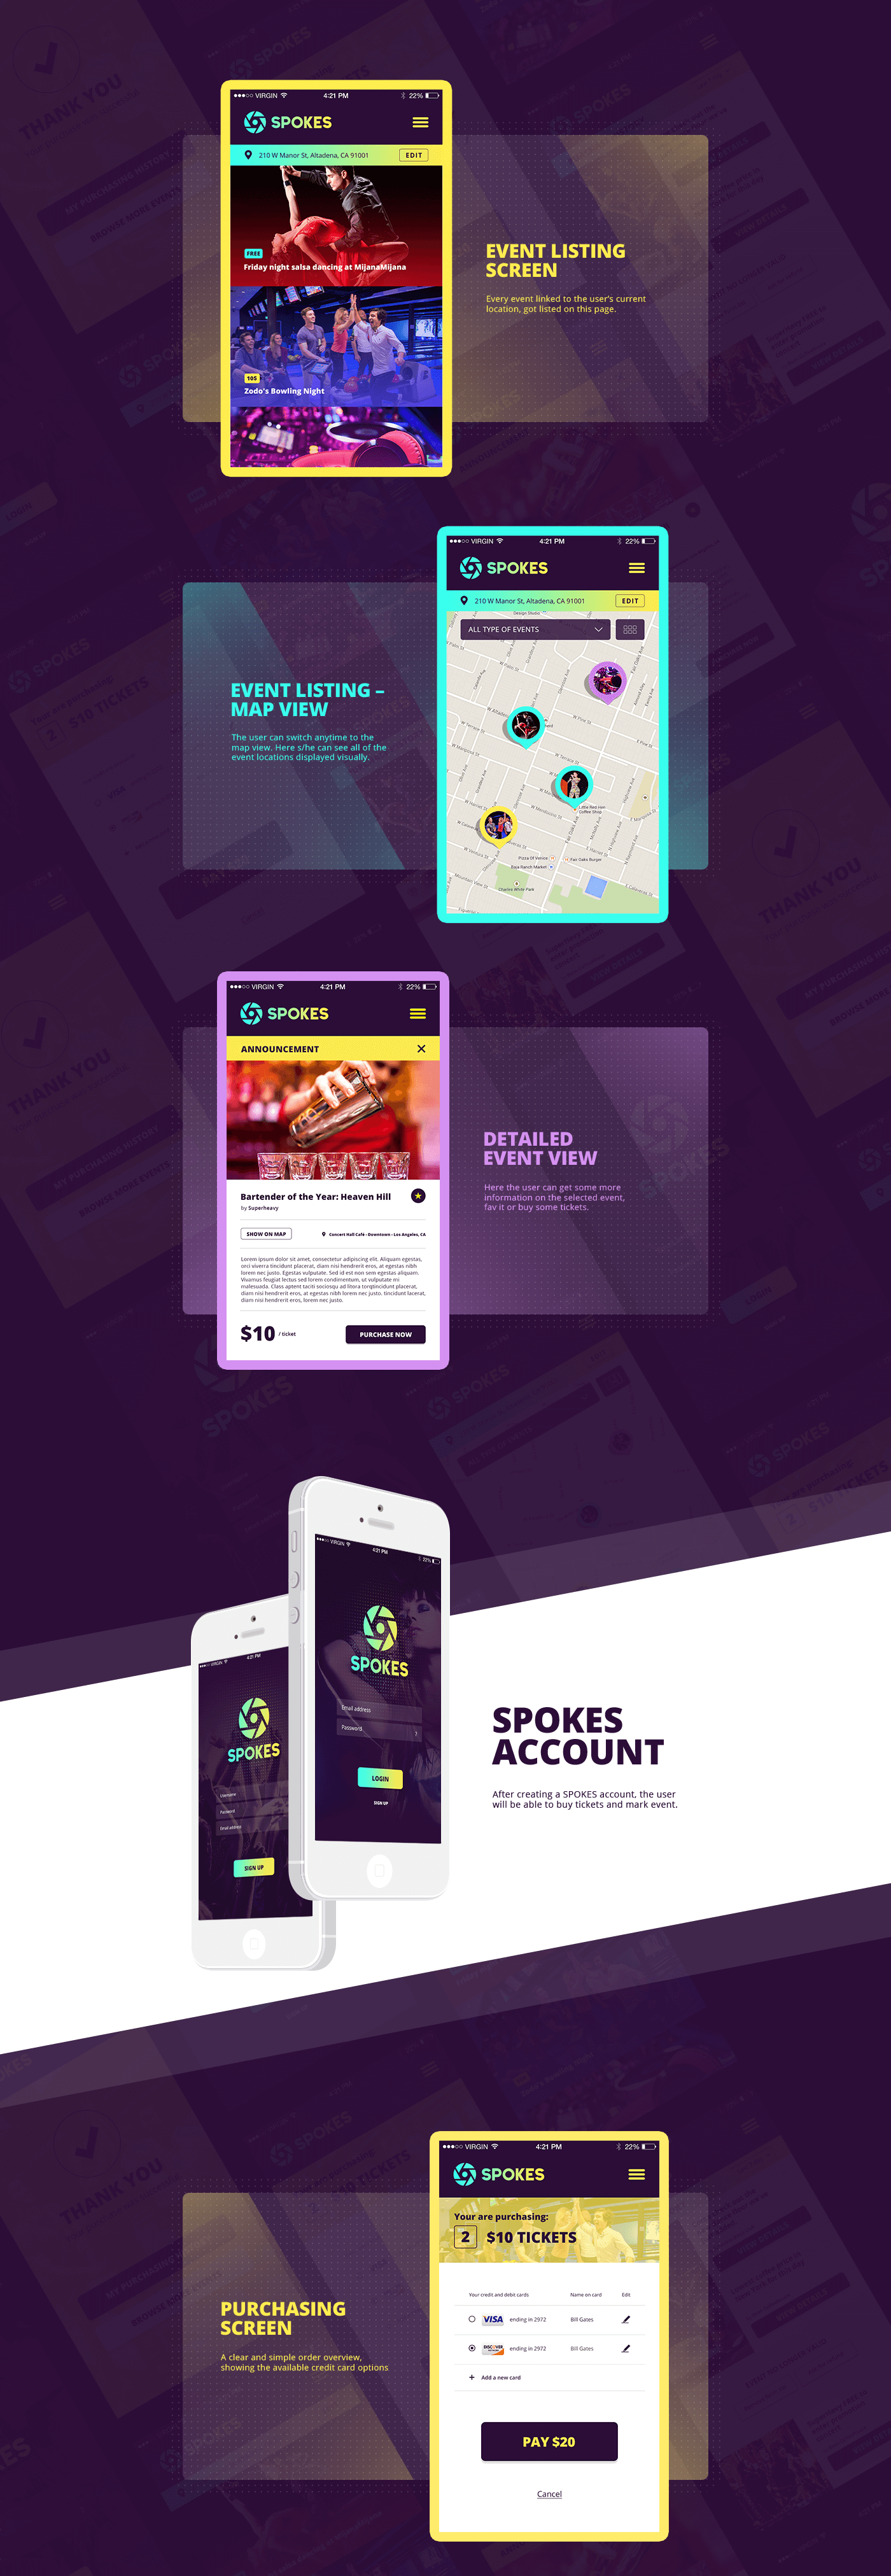 Spokes mobile app design and branding by Finsweet